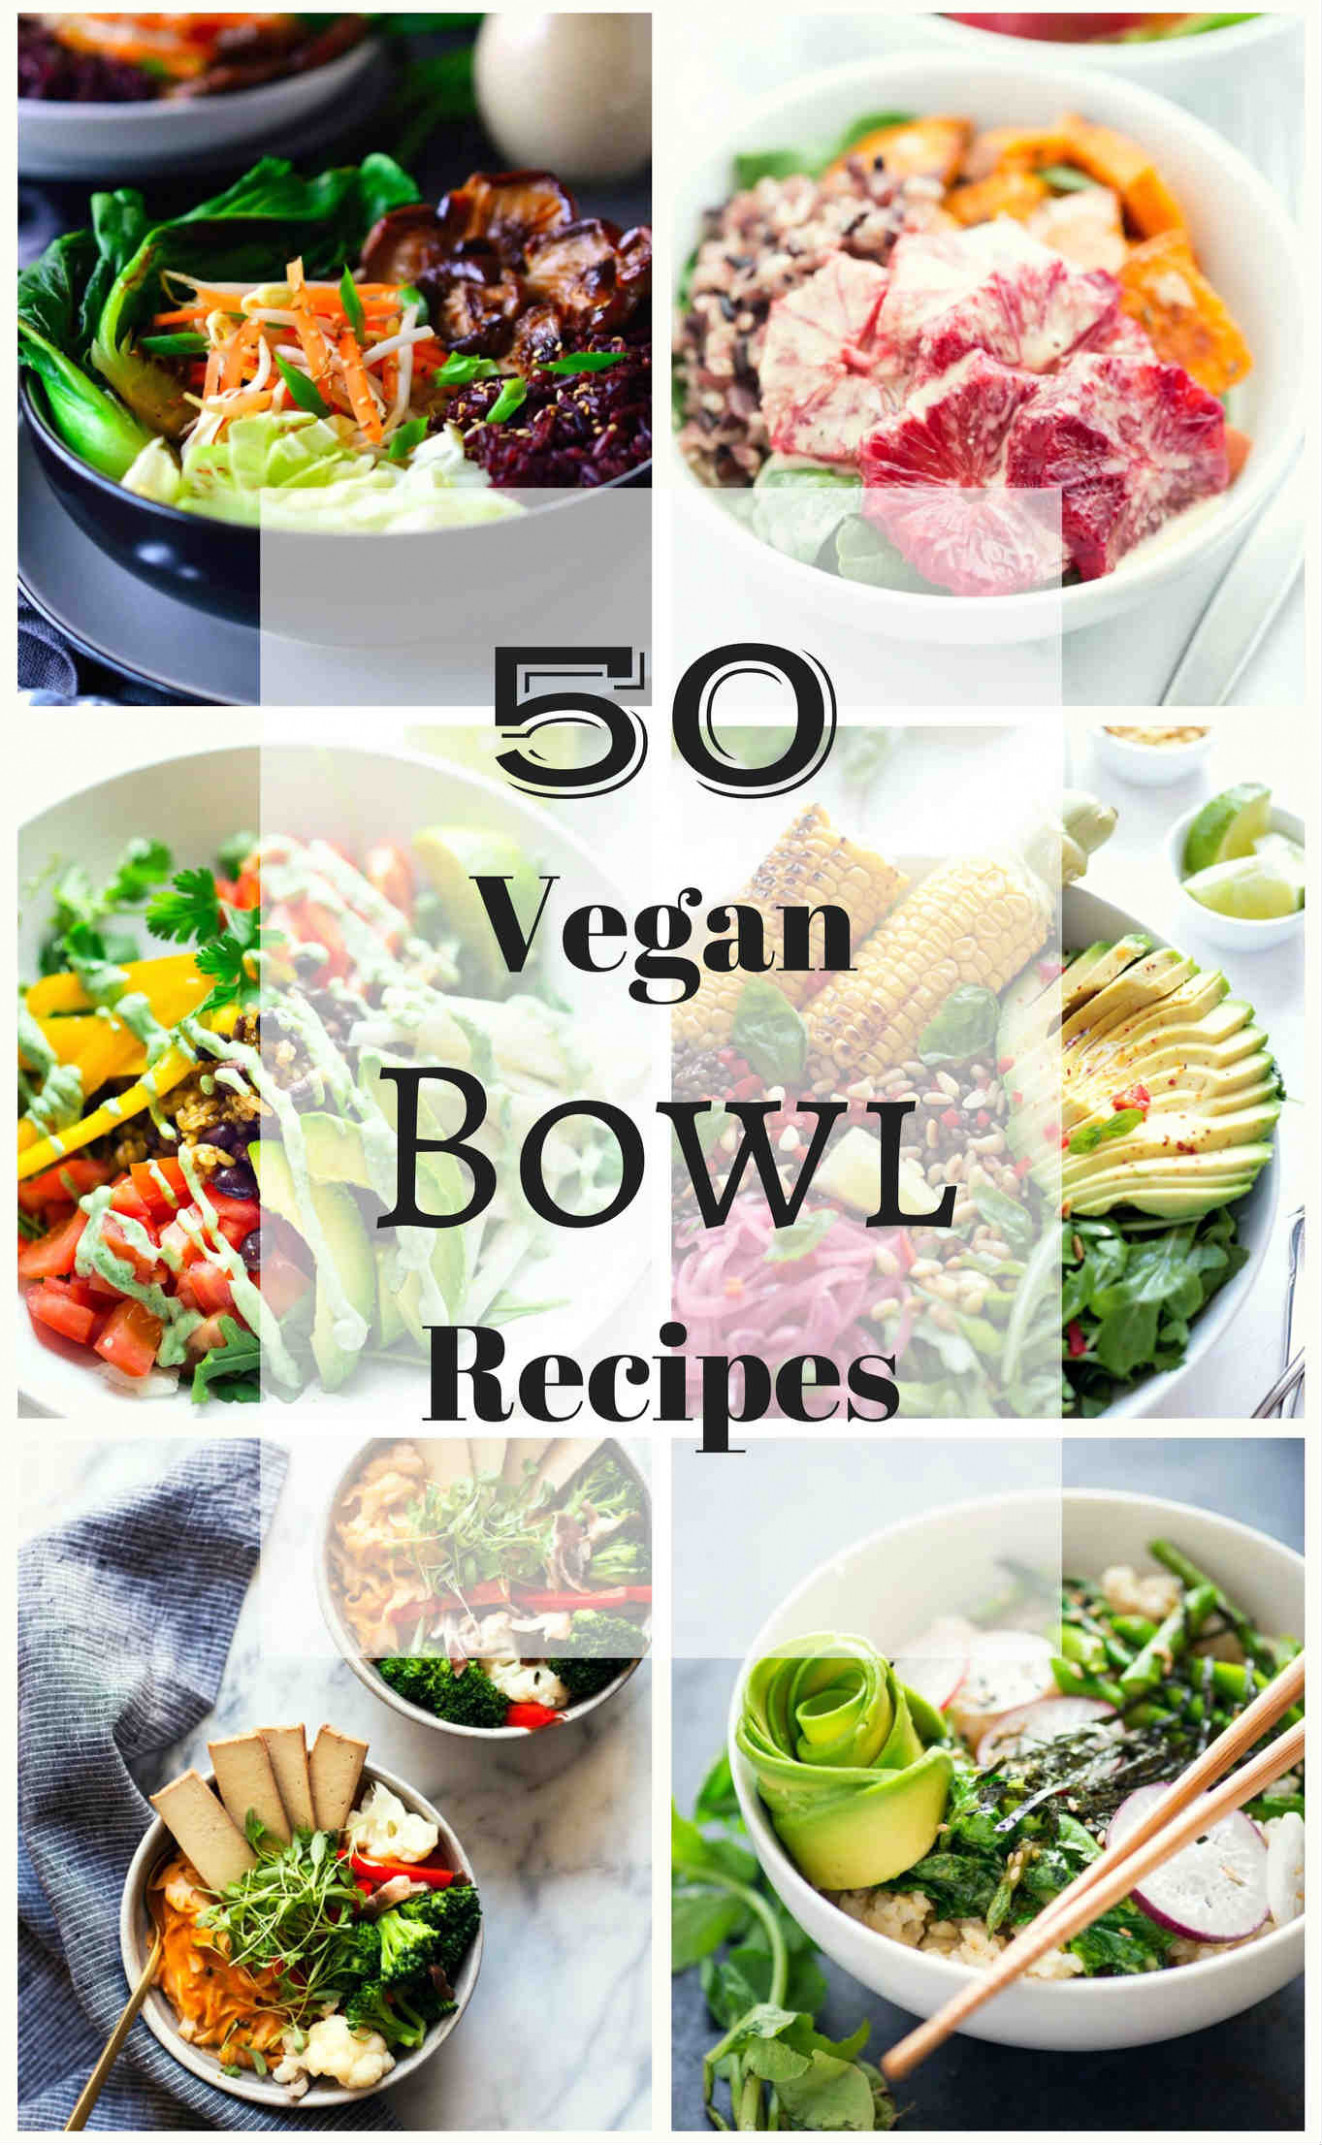 15 Vegan Bowl Recipes | The Stingy Vegan - recipes vegetarian bowls